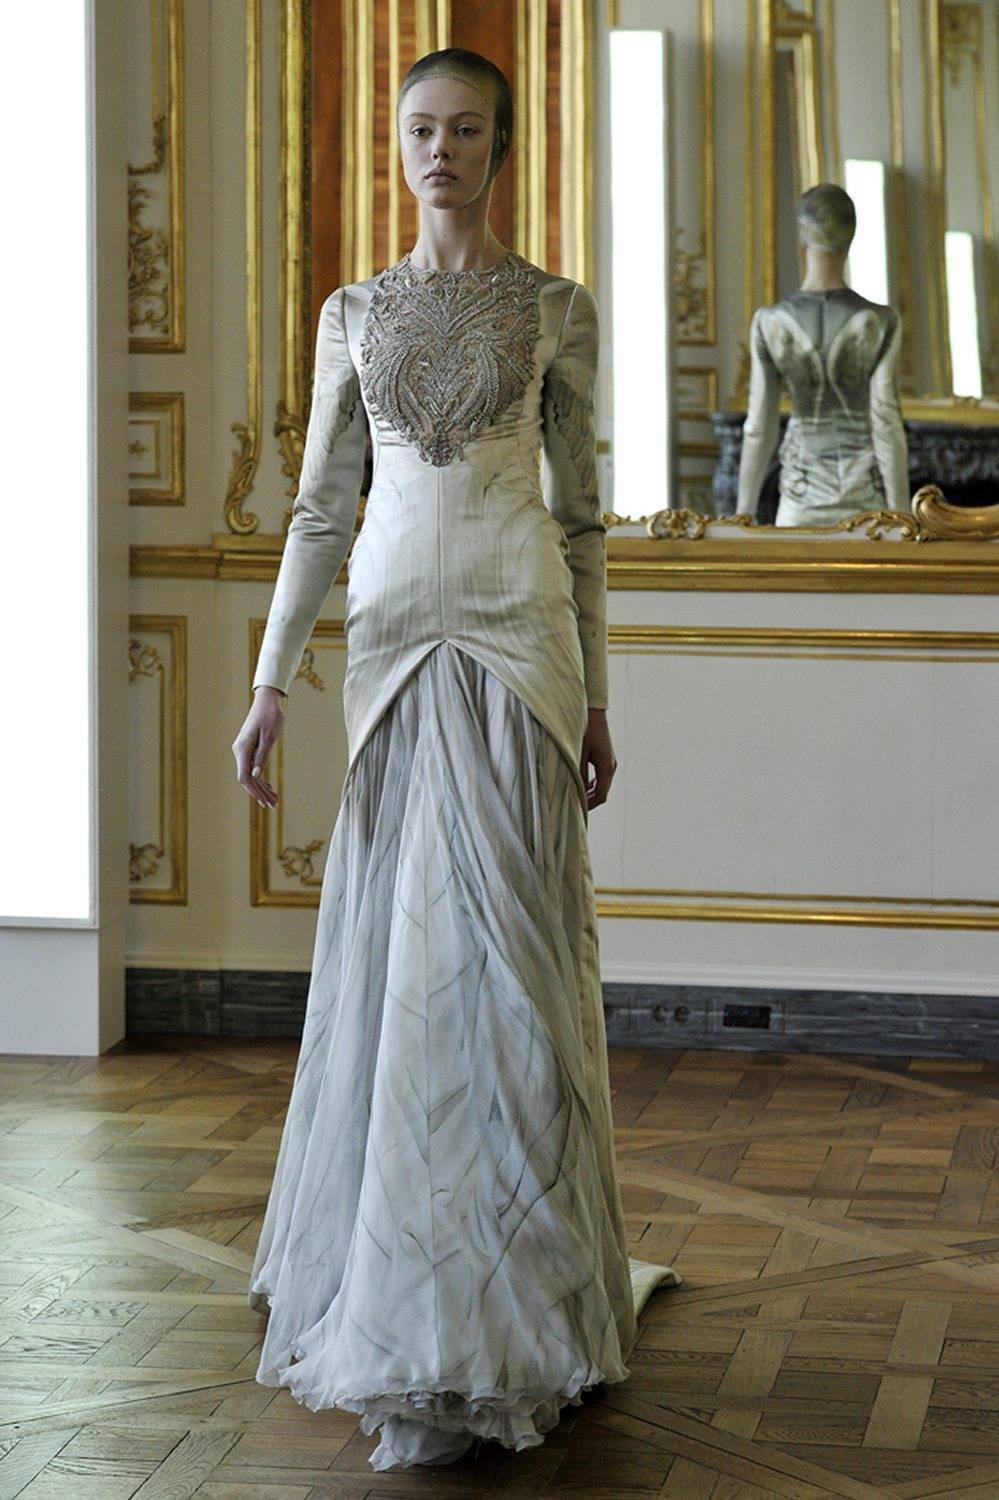 alexander mcqueen wedding dress mcqueen a fashion revolution wedding dresses 1252